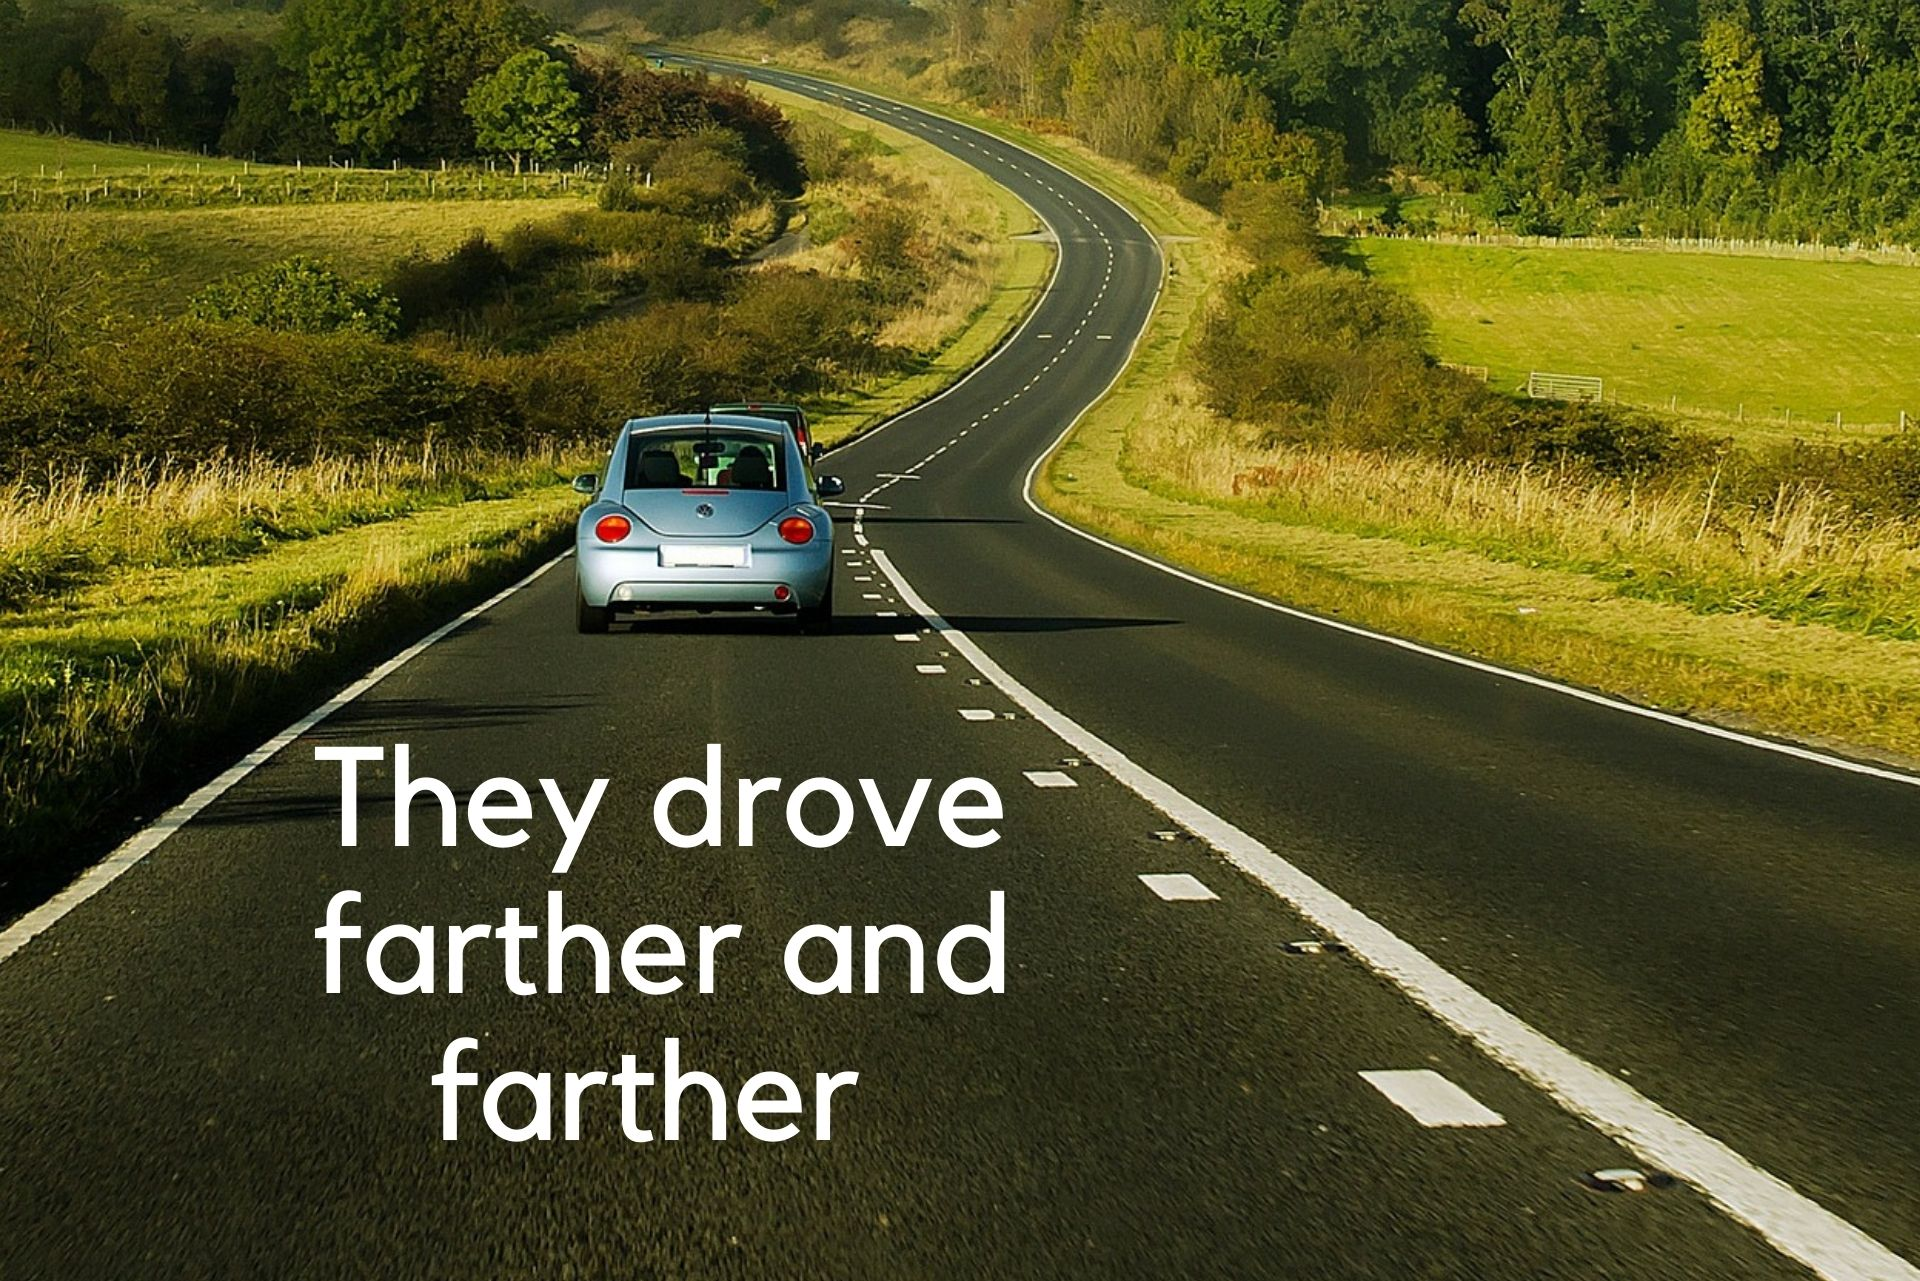 """Explaining farther vs. further: car driving with caption """"they drove farther and farther"""""""